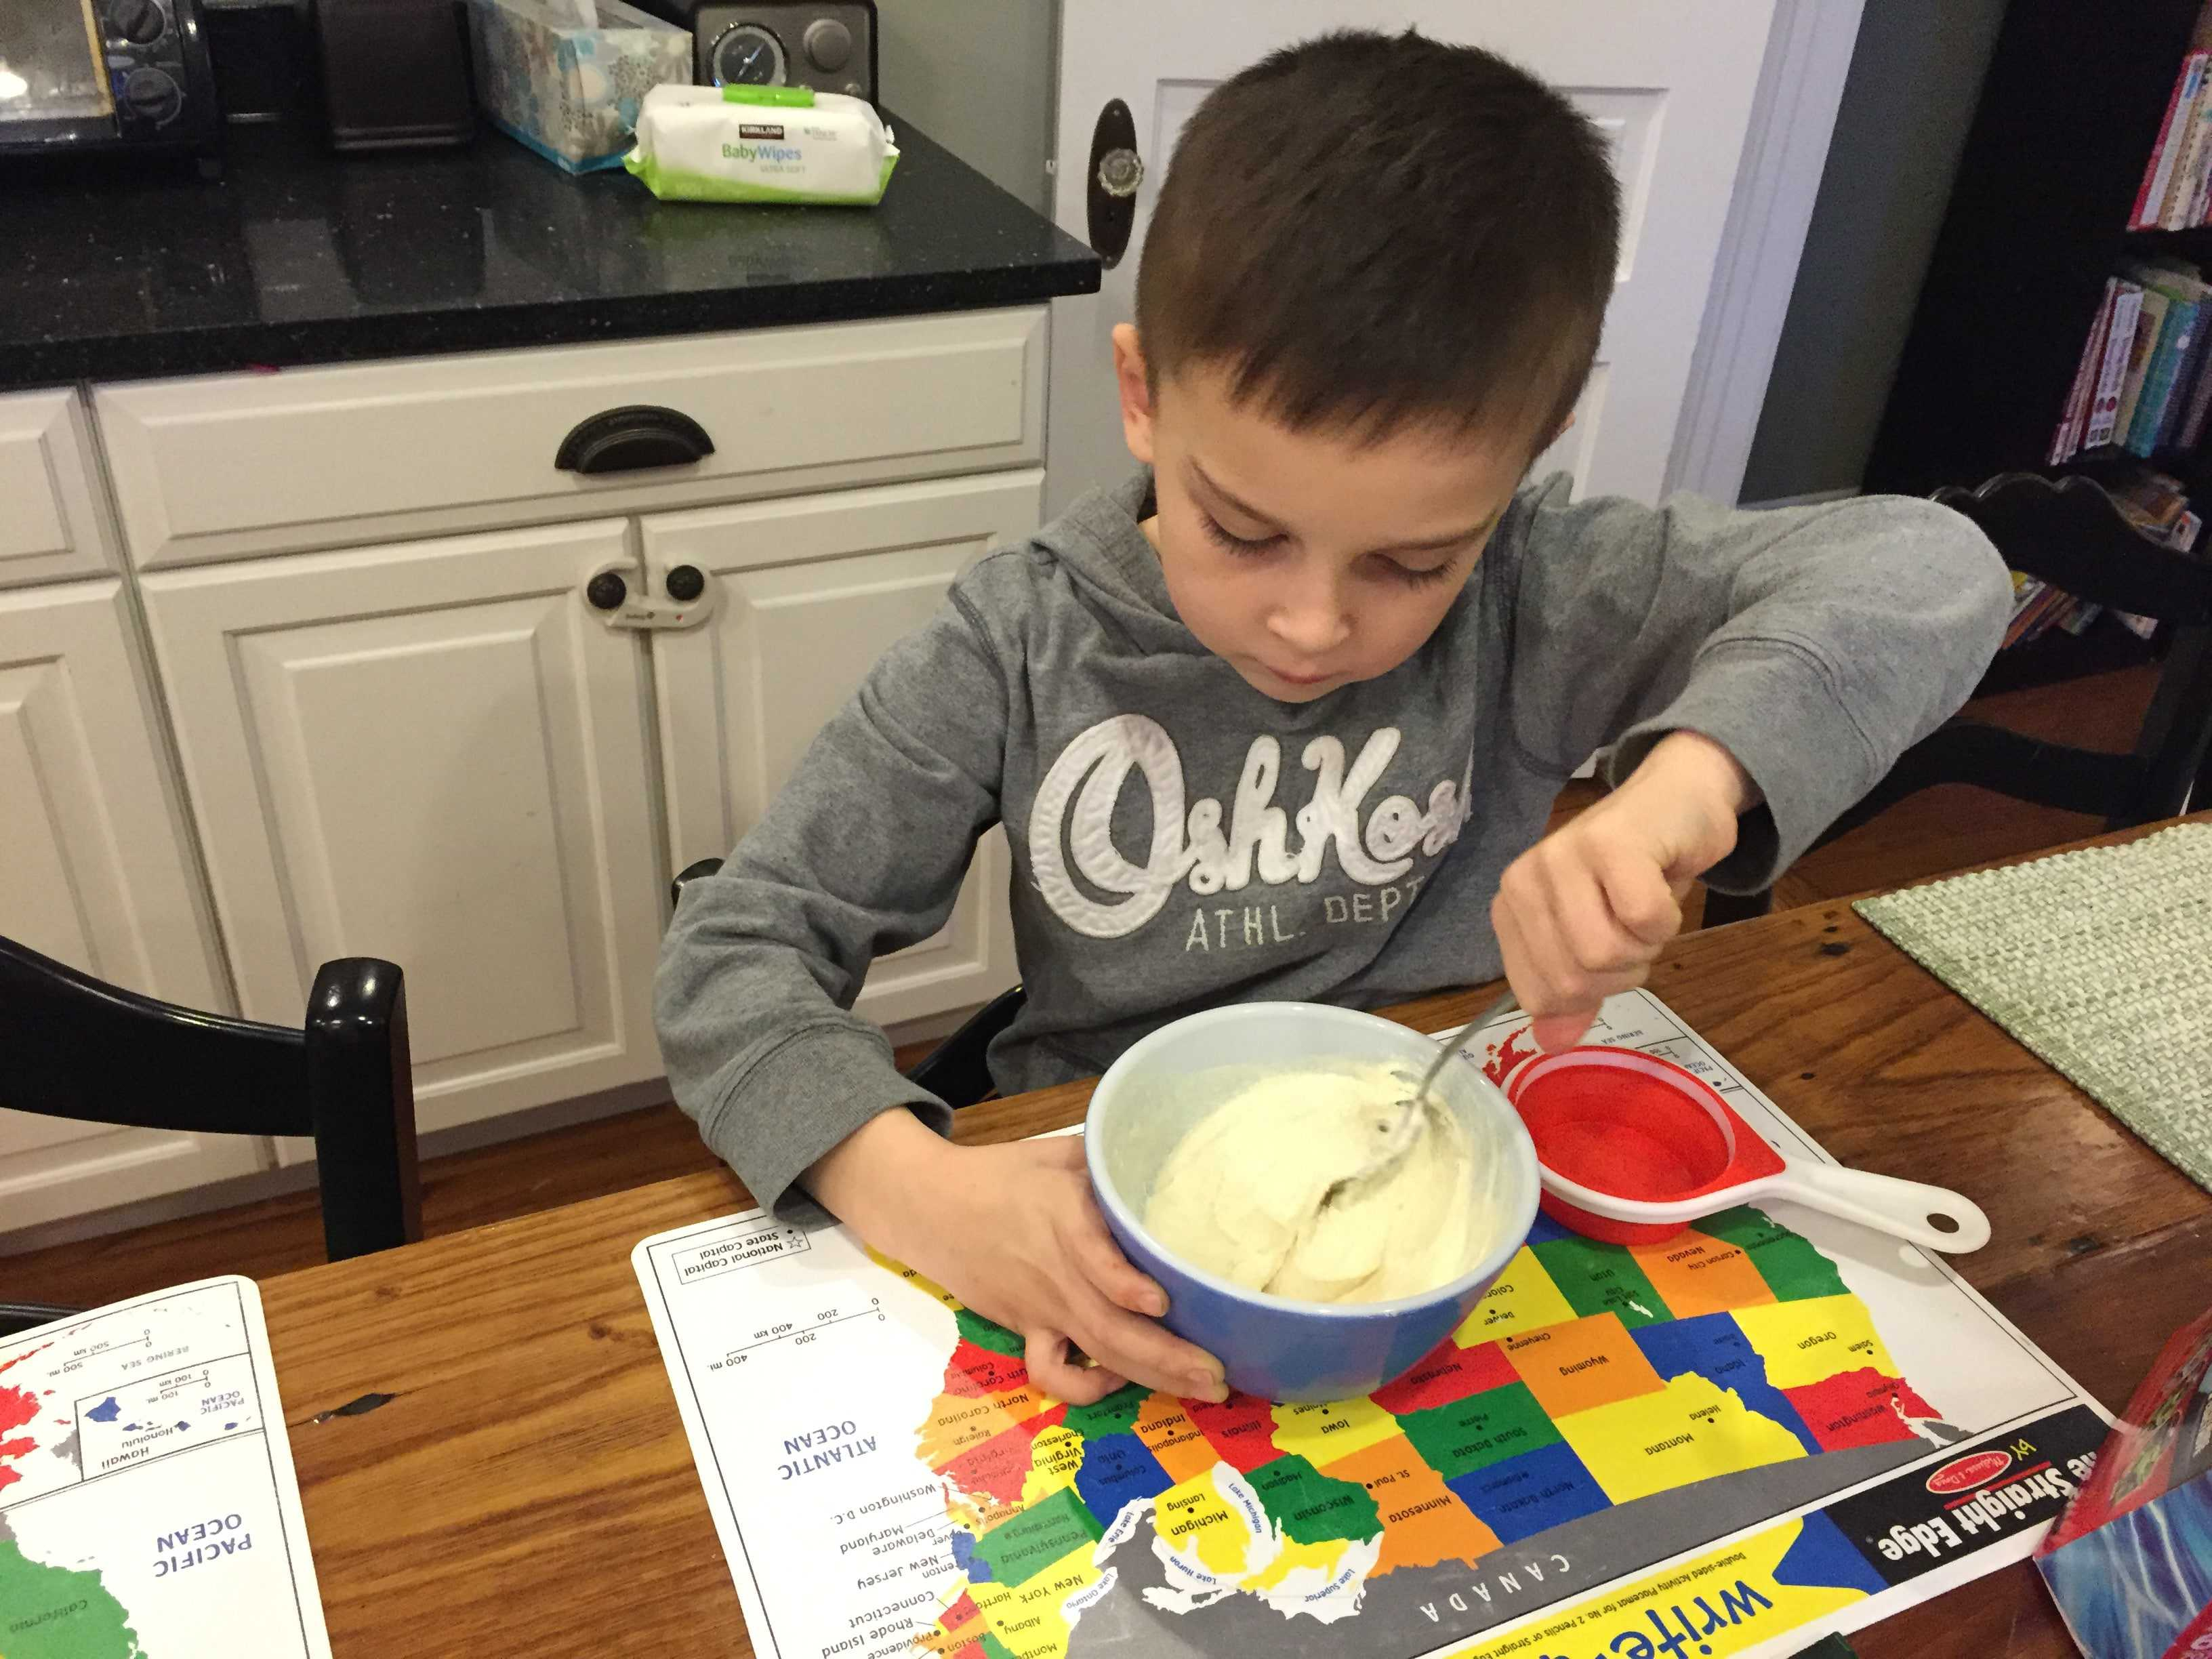 A boy mixing ingredients together to make muddy buddies